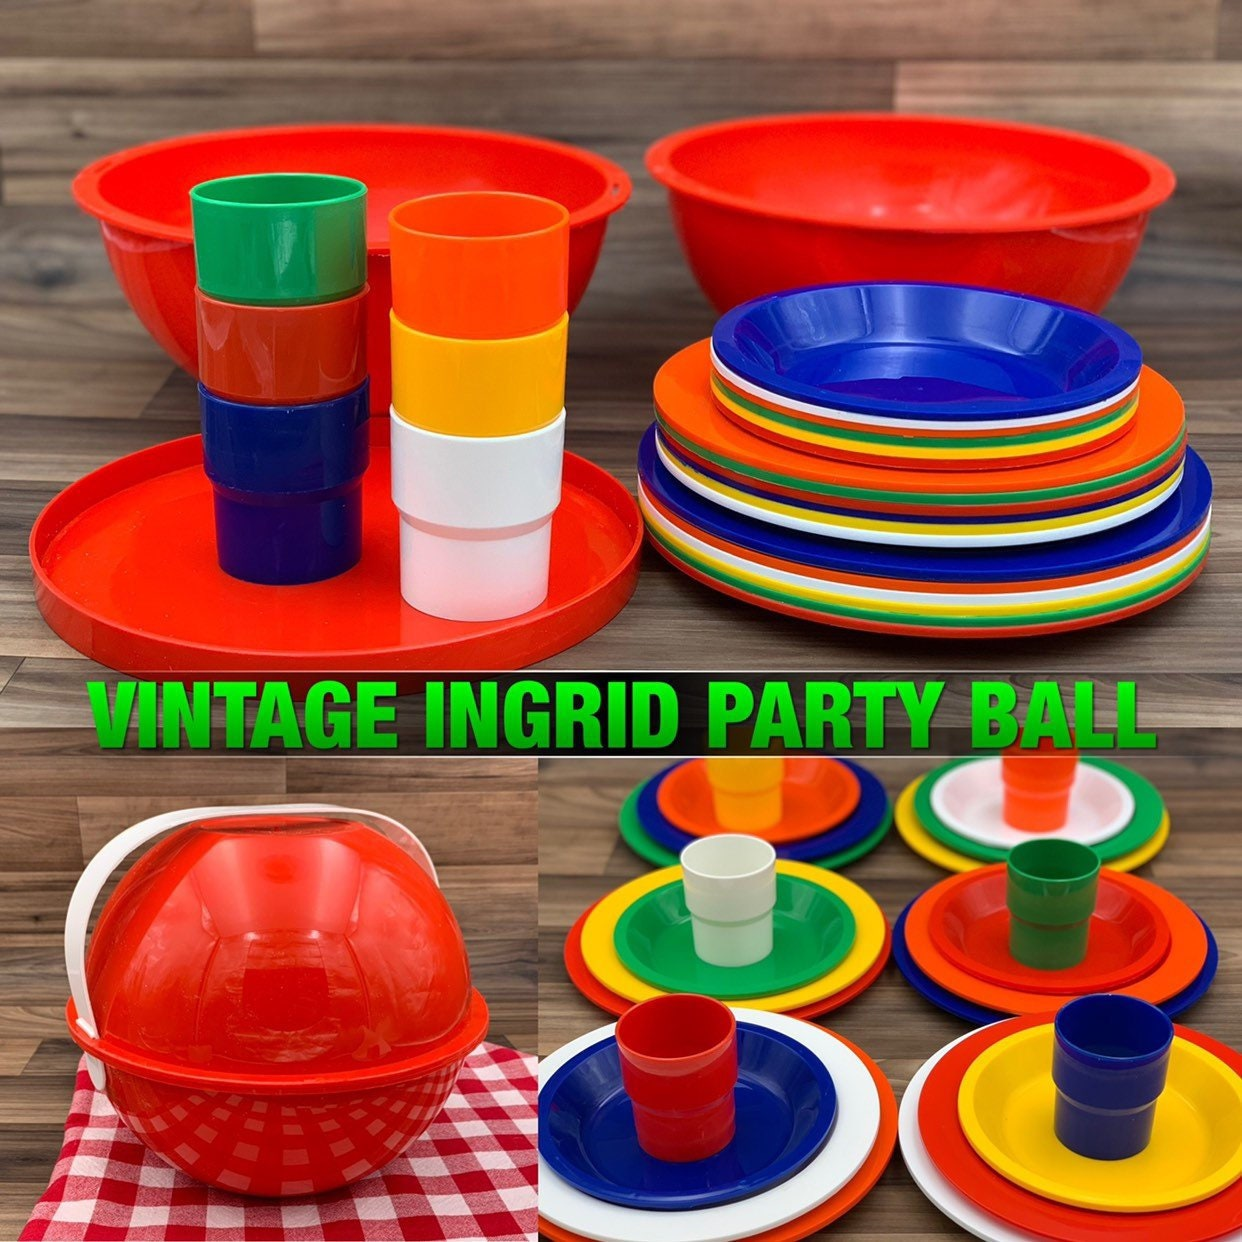 Vtg Ingrid Party Pack 6 Mugs//6 Plates Bright Colors With Original Box Used